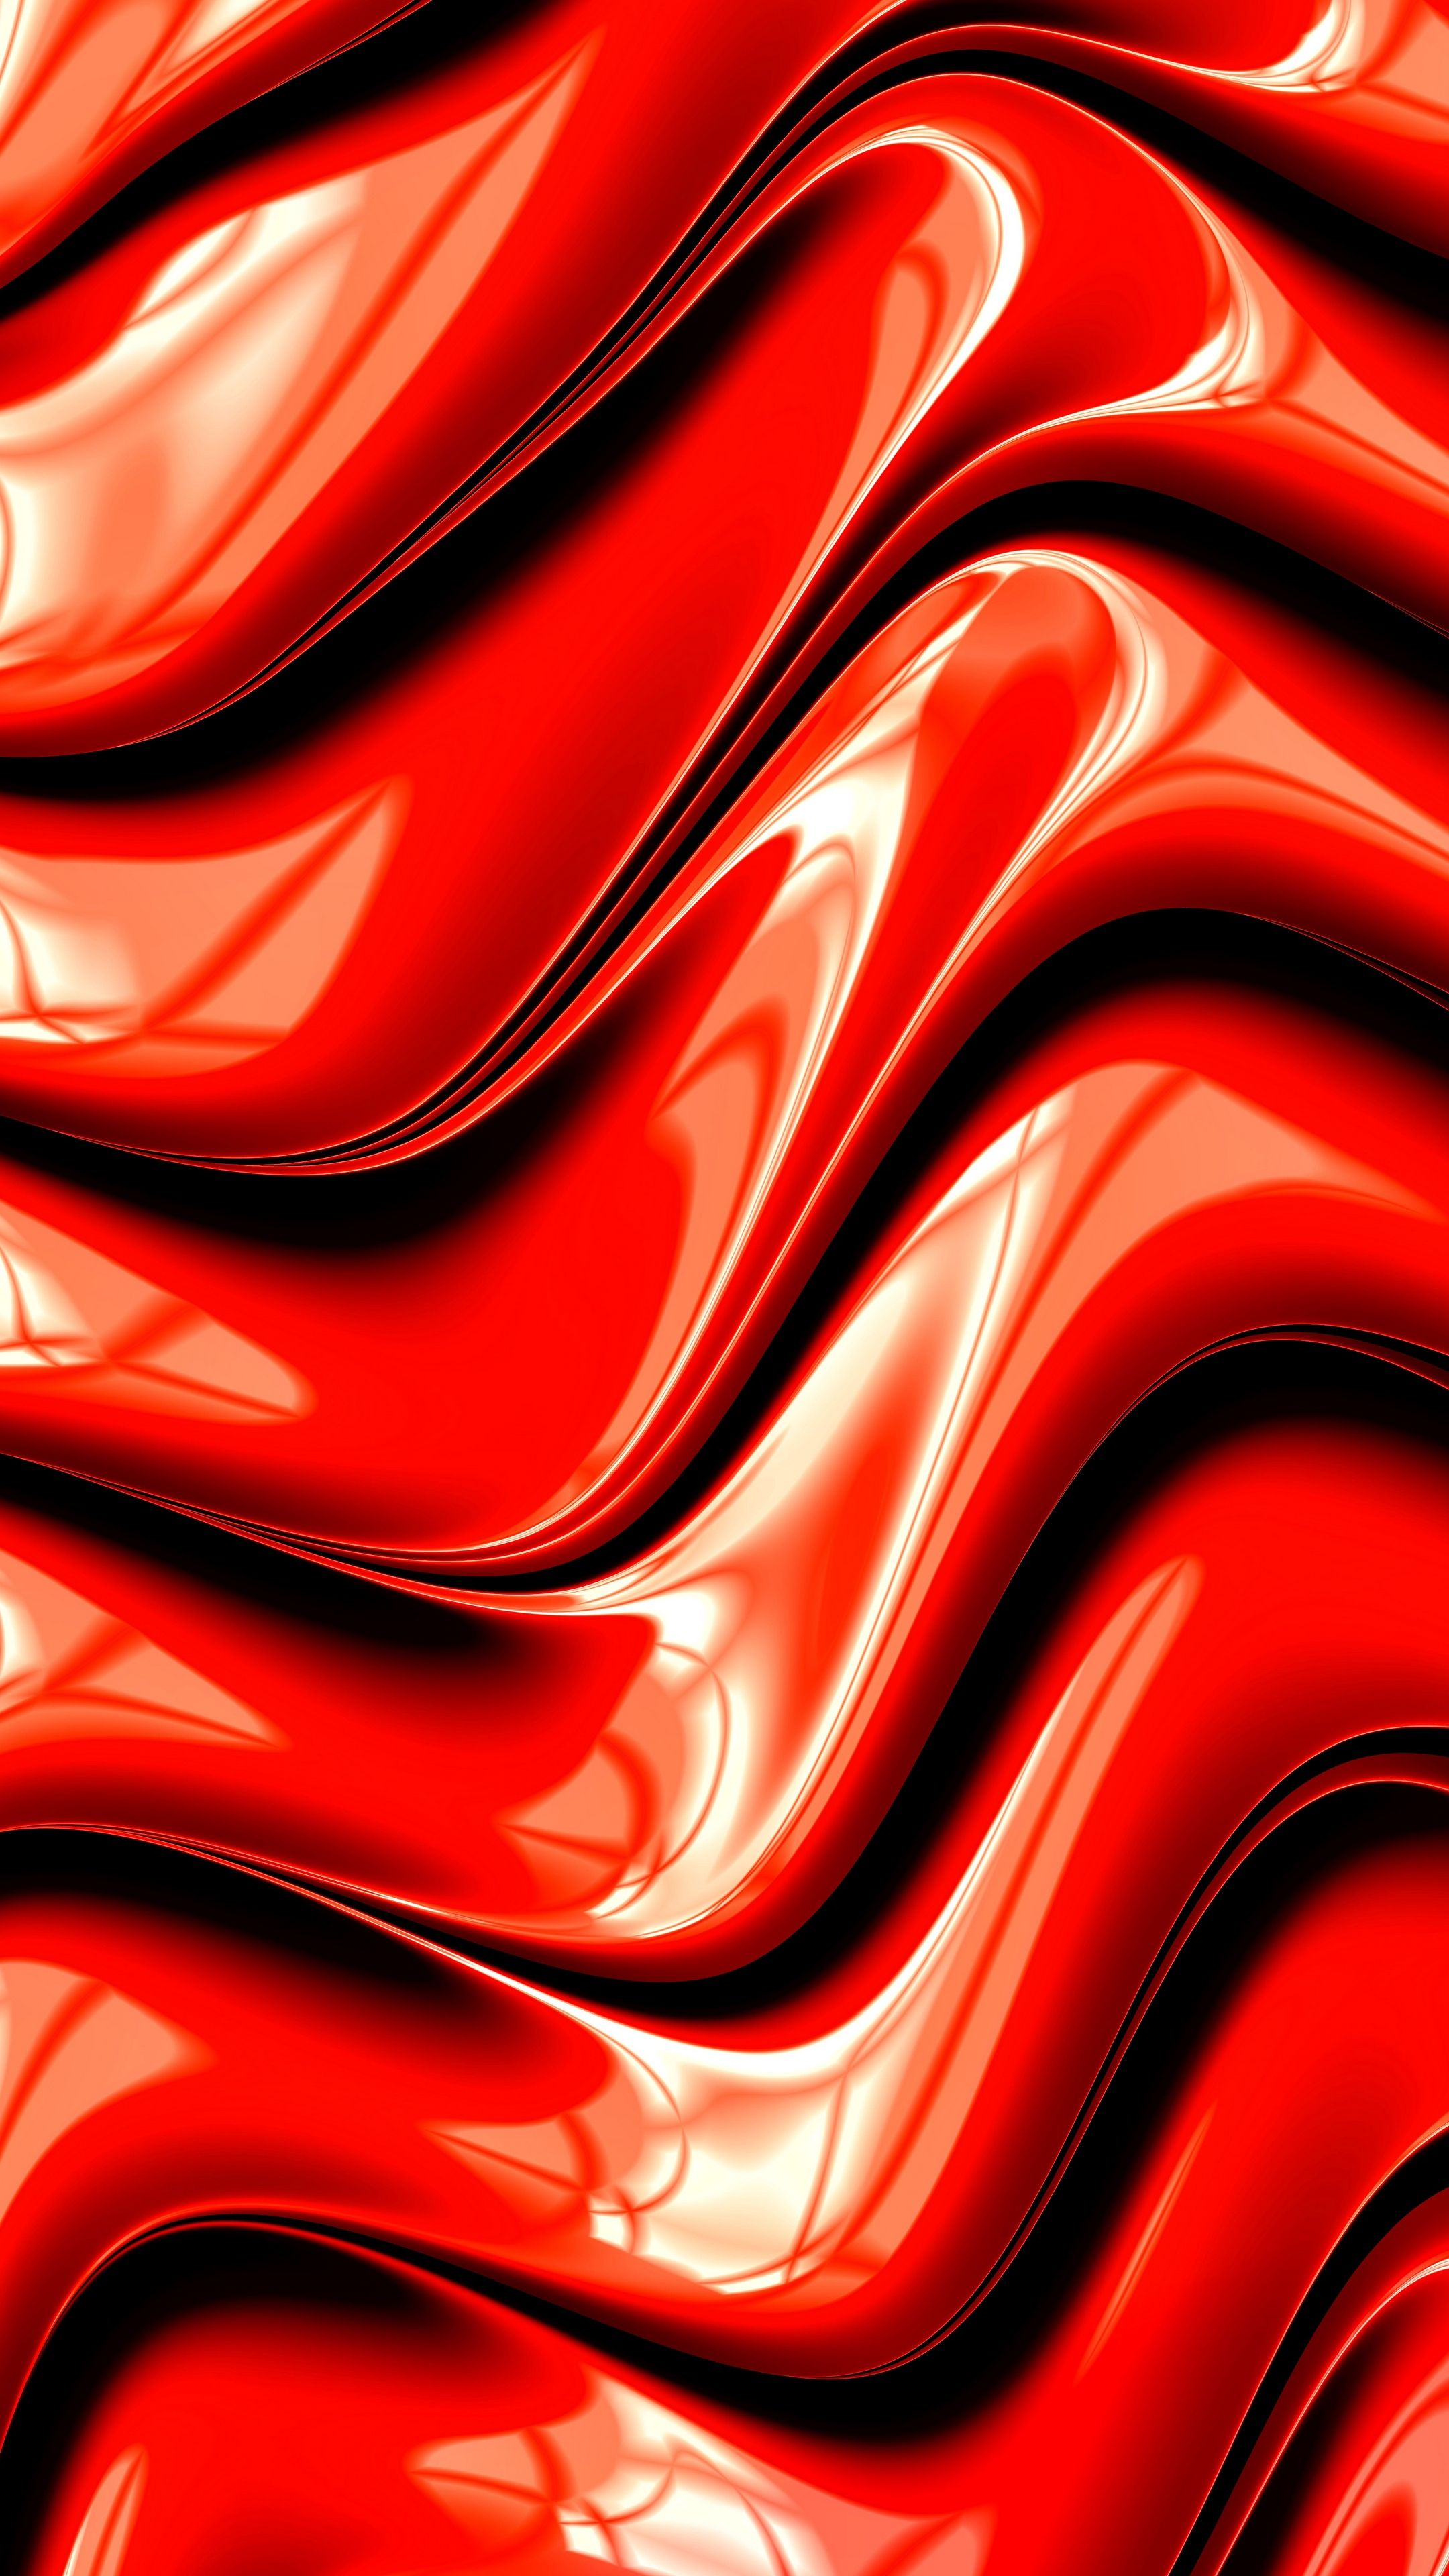 Abstract Fractal Graphic Red Surface Wallpapers Hd 4k Background For Android Fond D Ecran Colore Fractal Fond Ecran Iphone